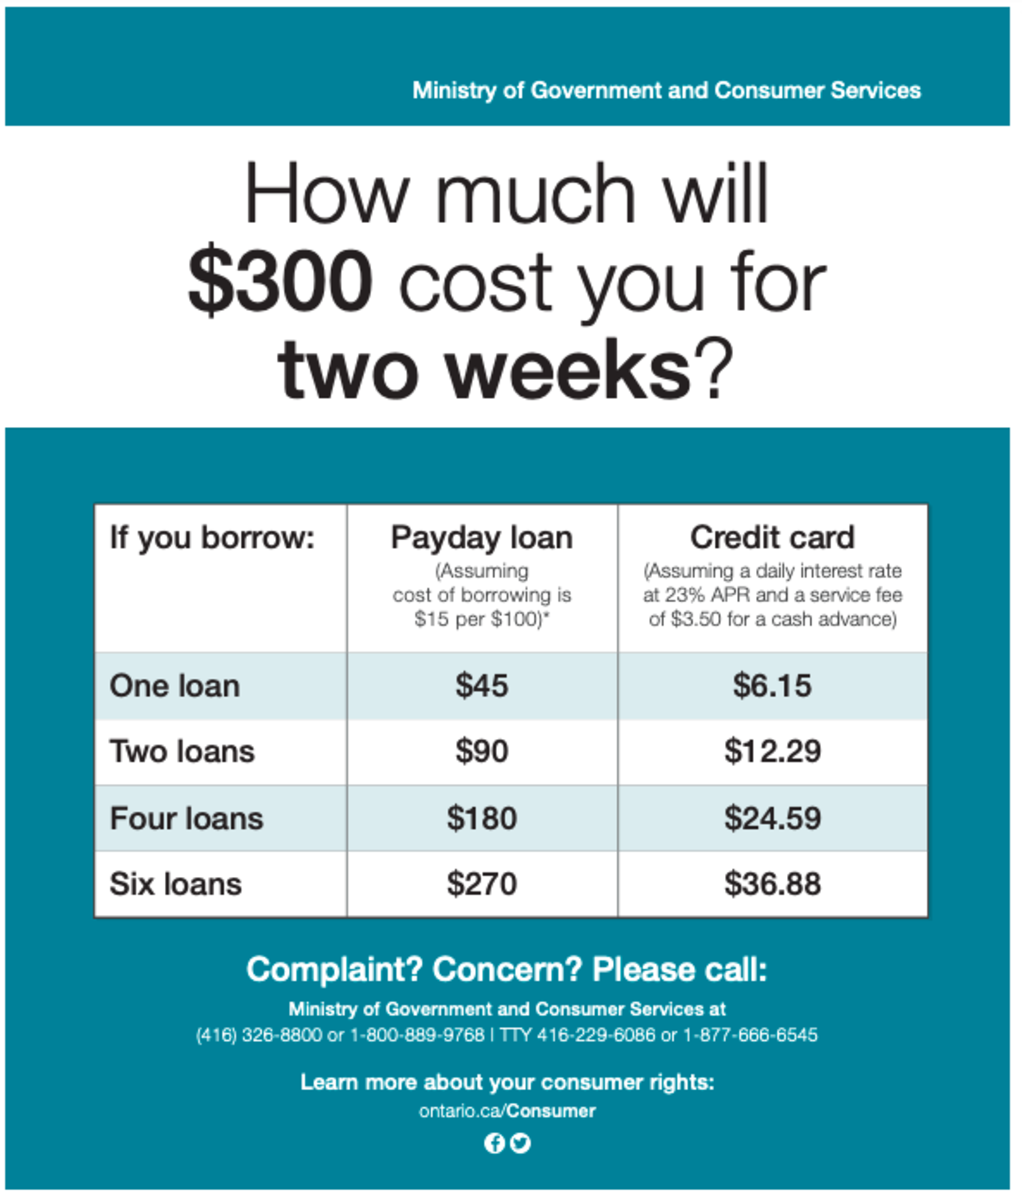 Credit cards are CHEAP compared to payday loans!